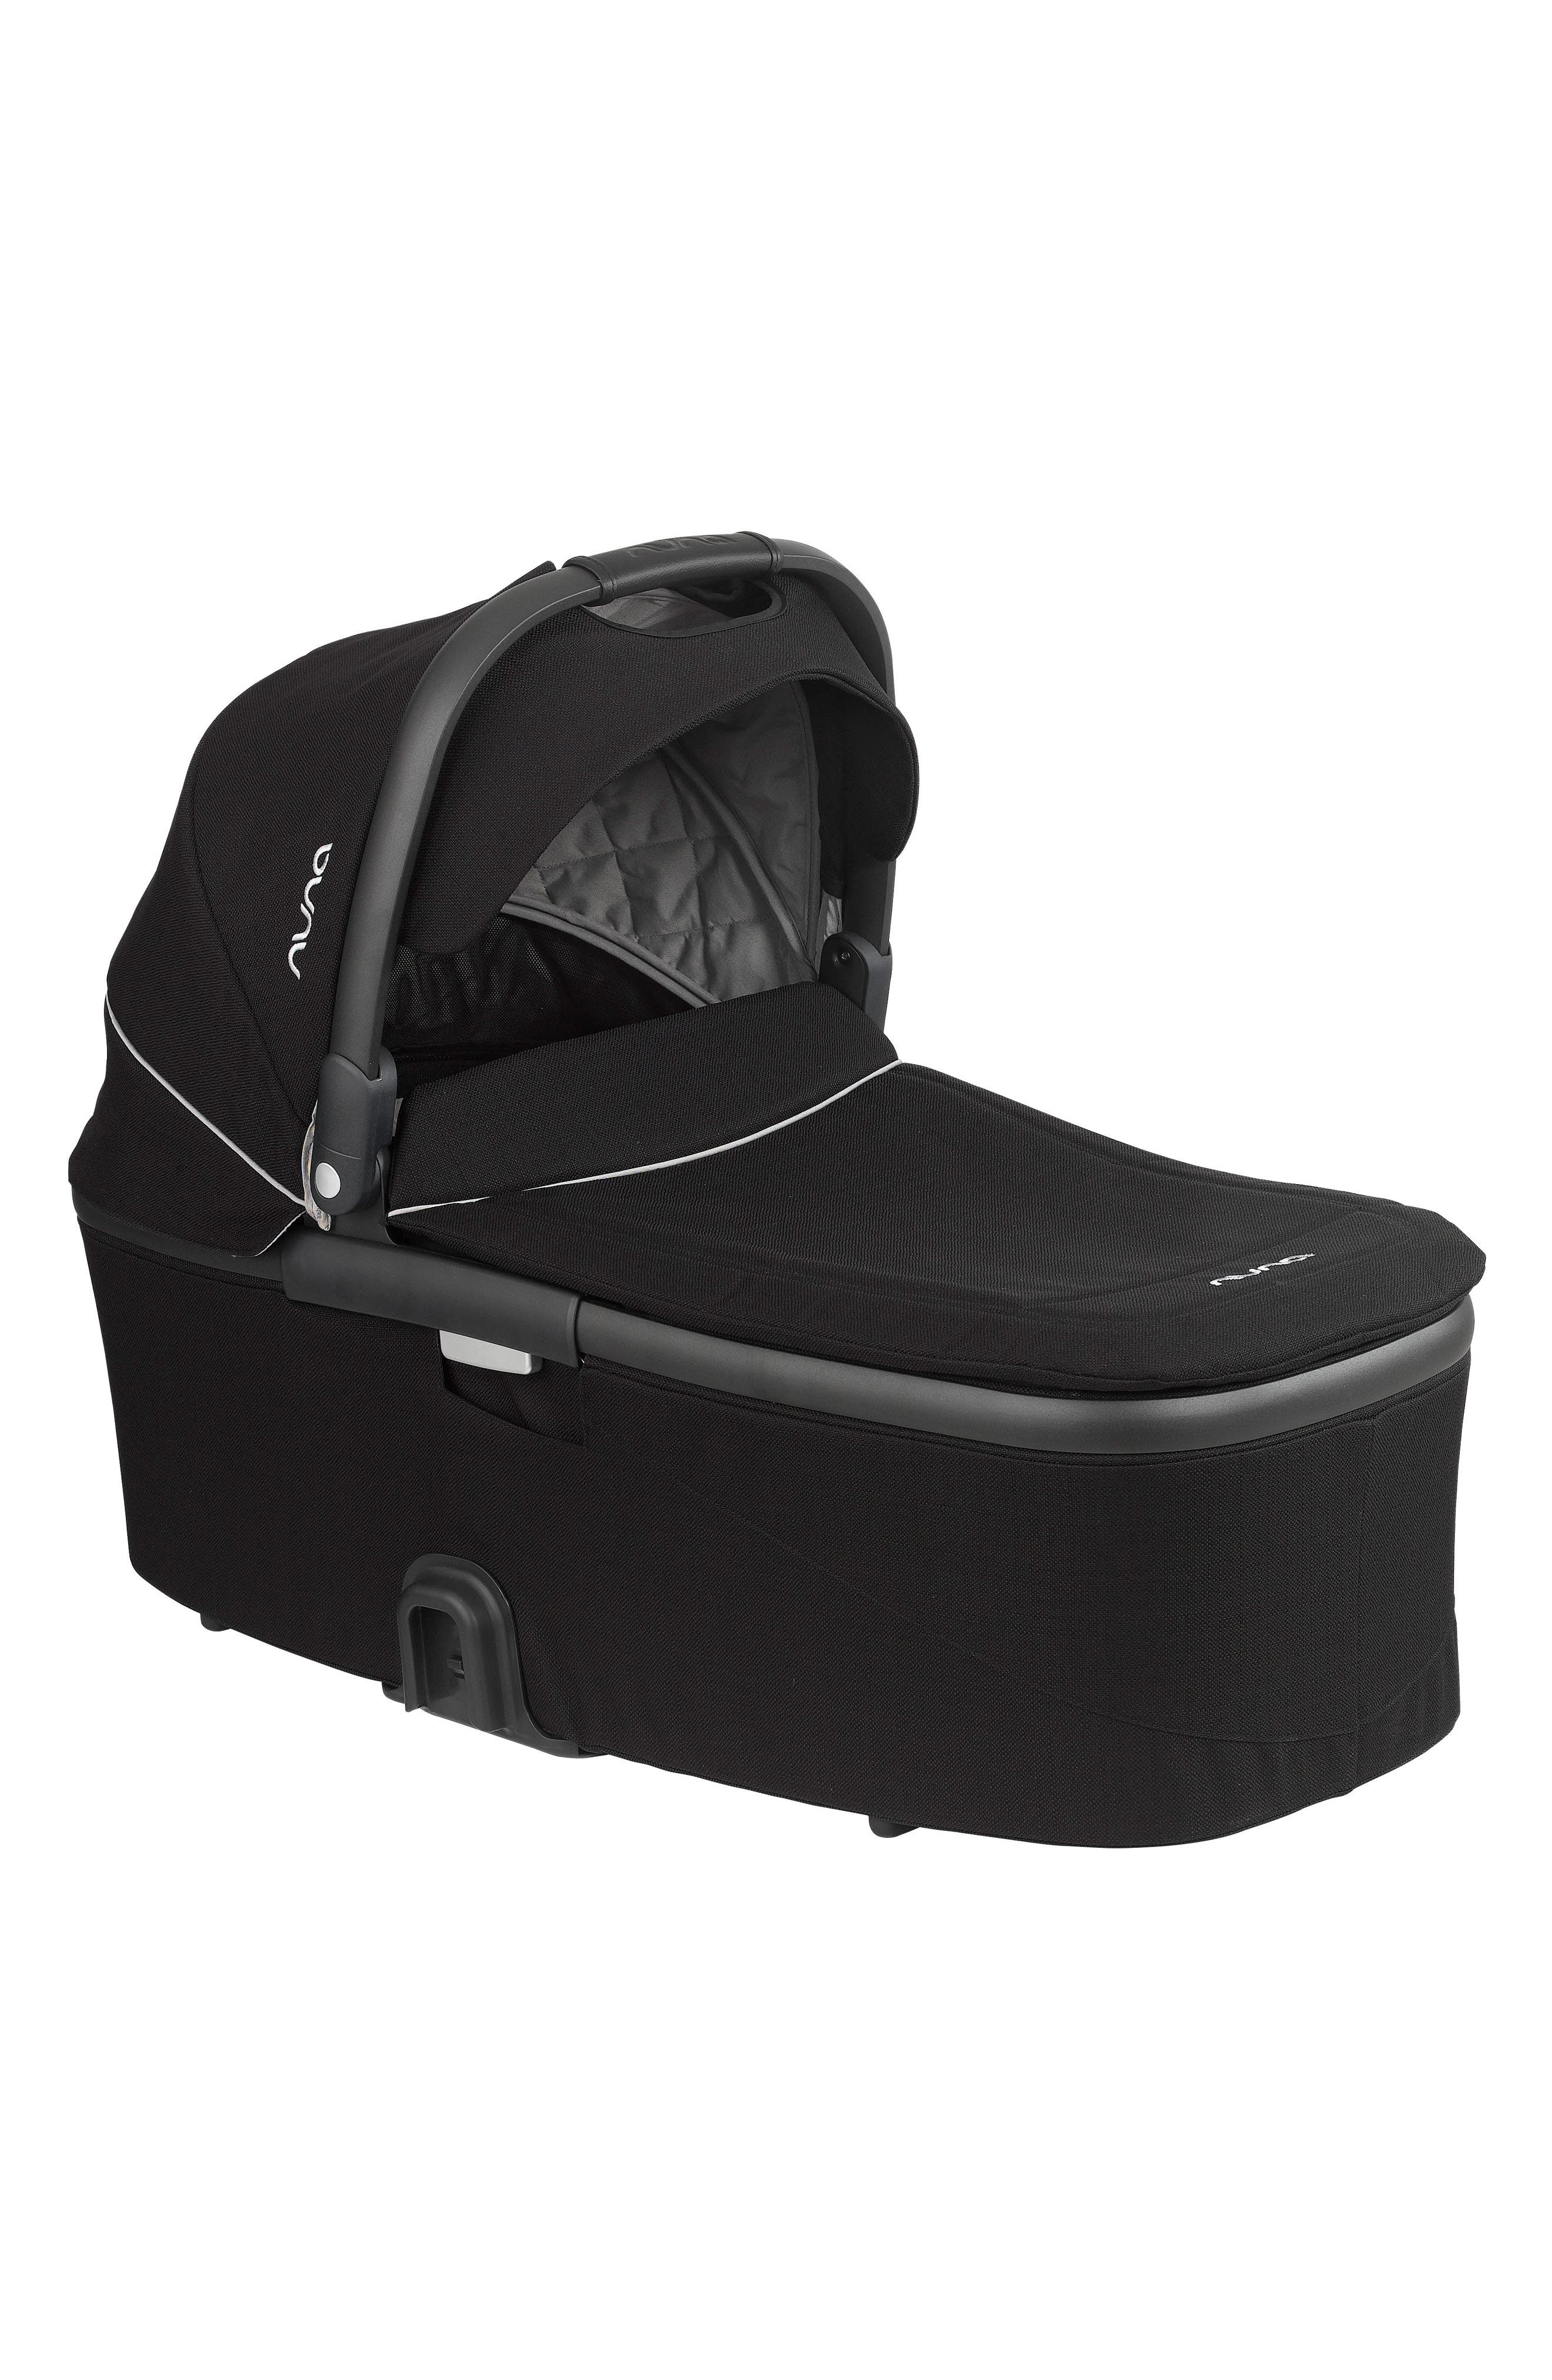 NUNA MIXX Bassinet for nuna MIXX Stroller, Main, color, CAVIAR